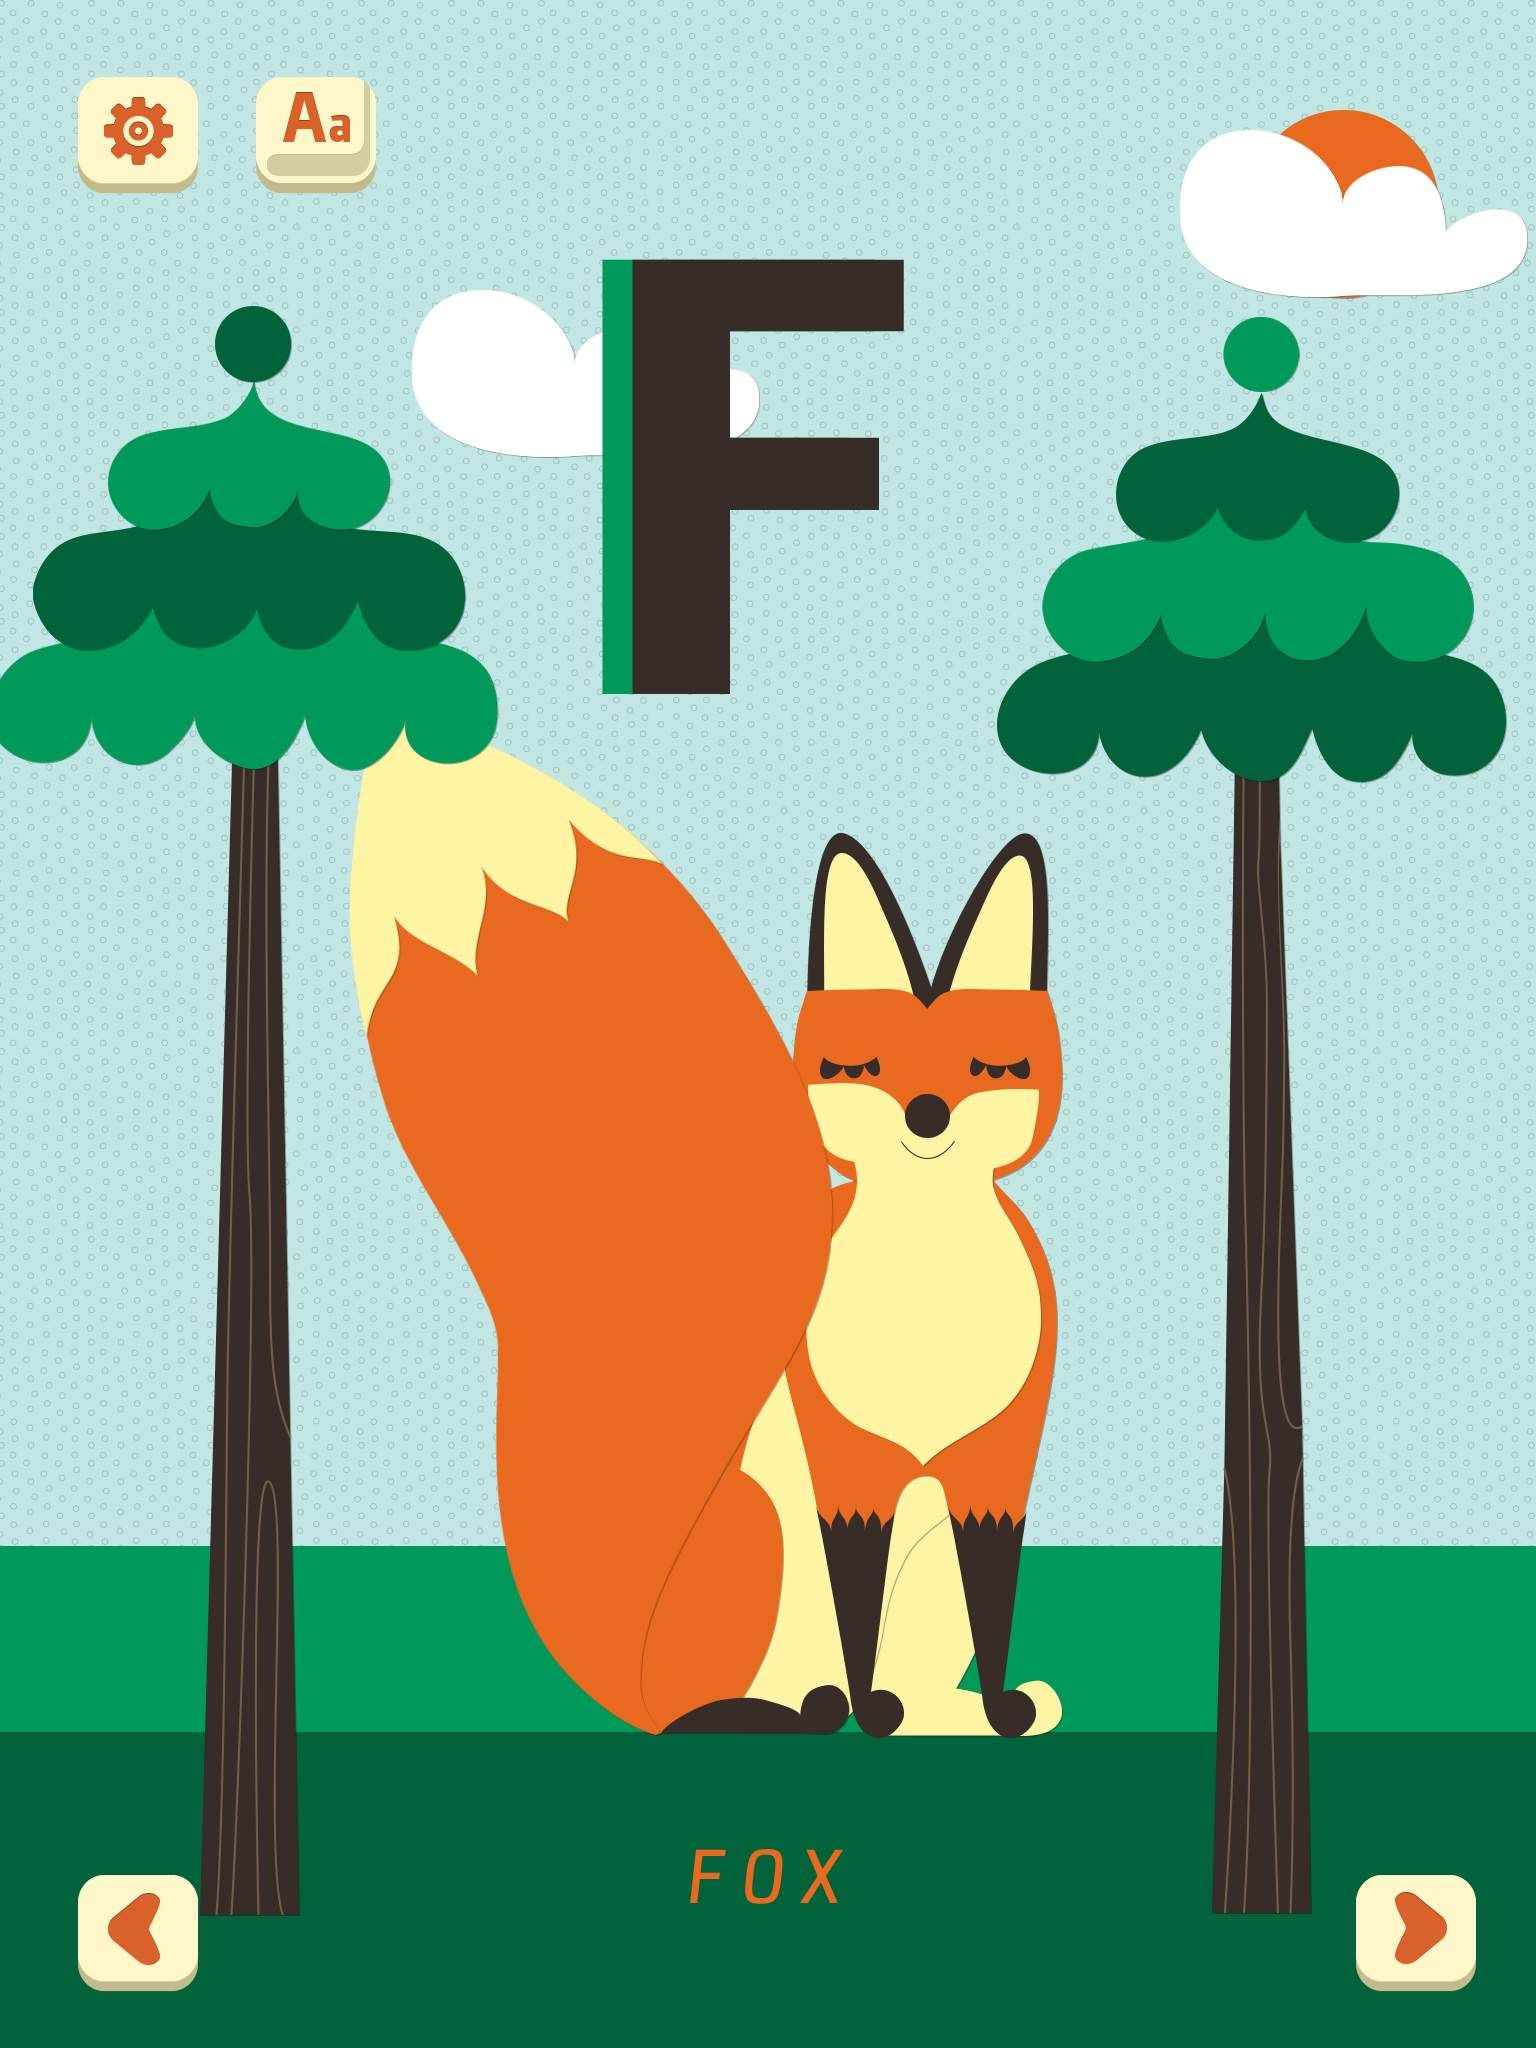 F it's Fox and Friday! ) Have wonderful weekends